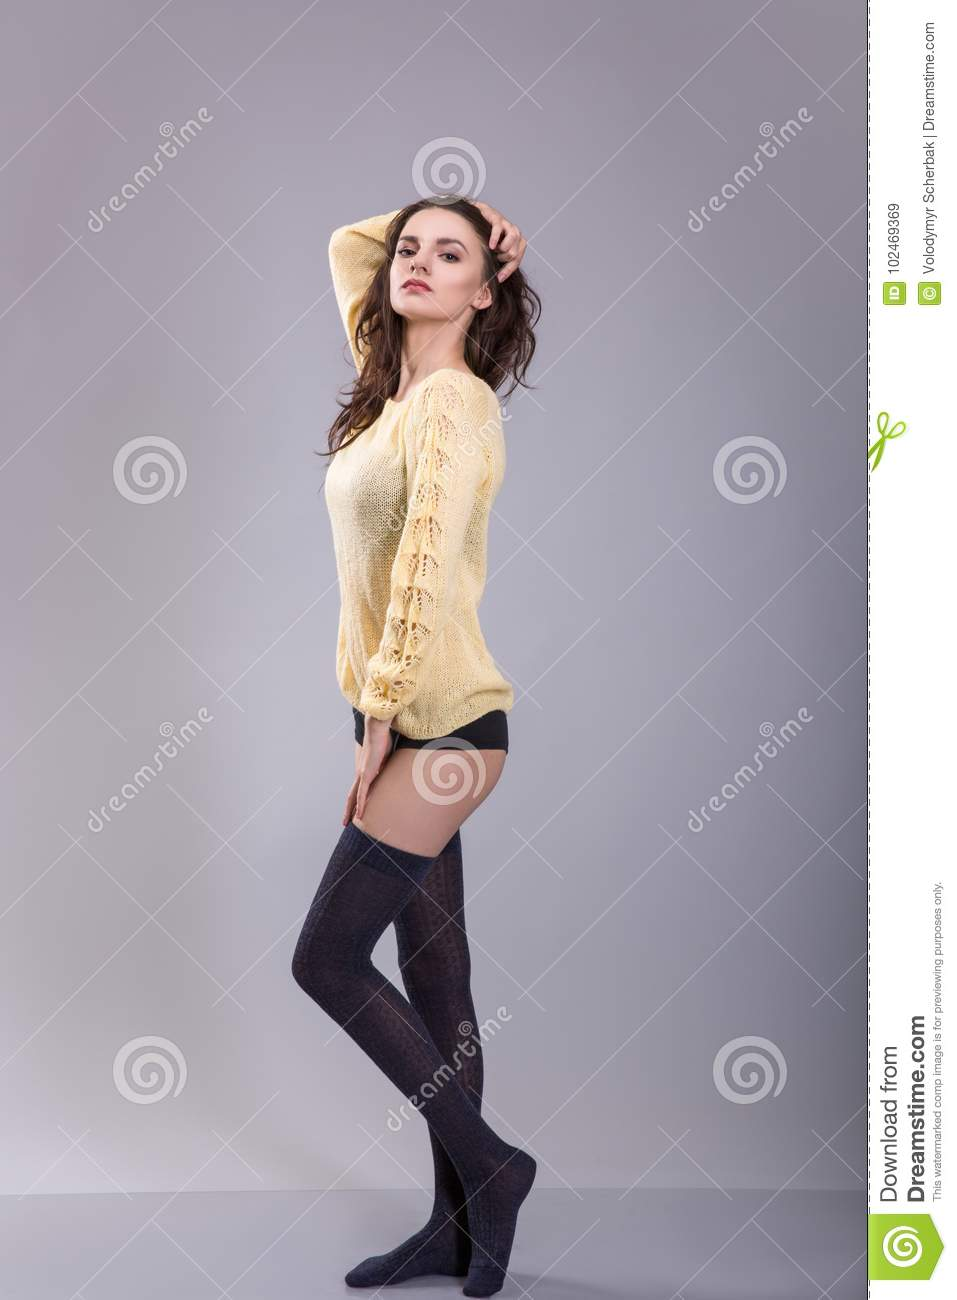 Young woman in knitted jumper and stockings stands on gray background